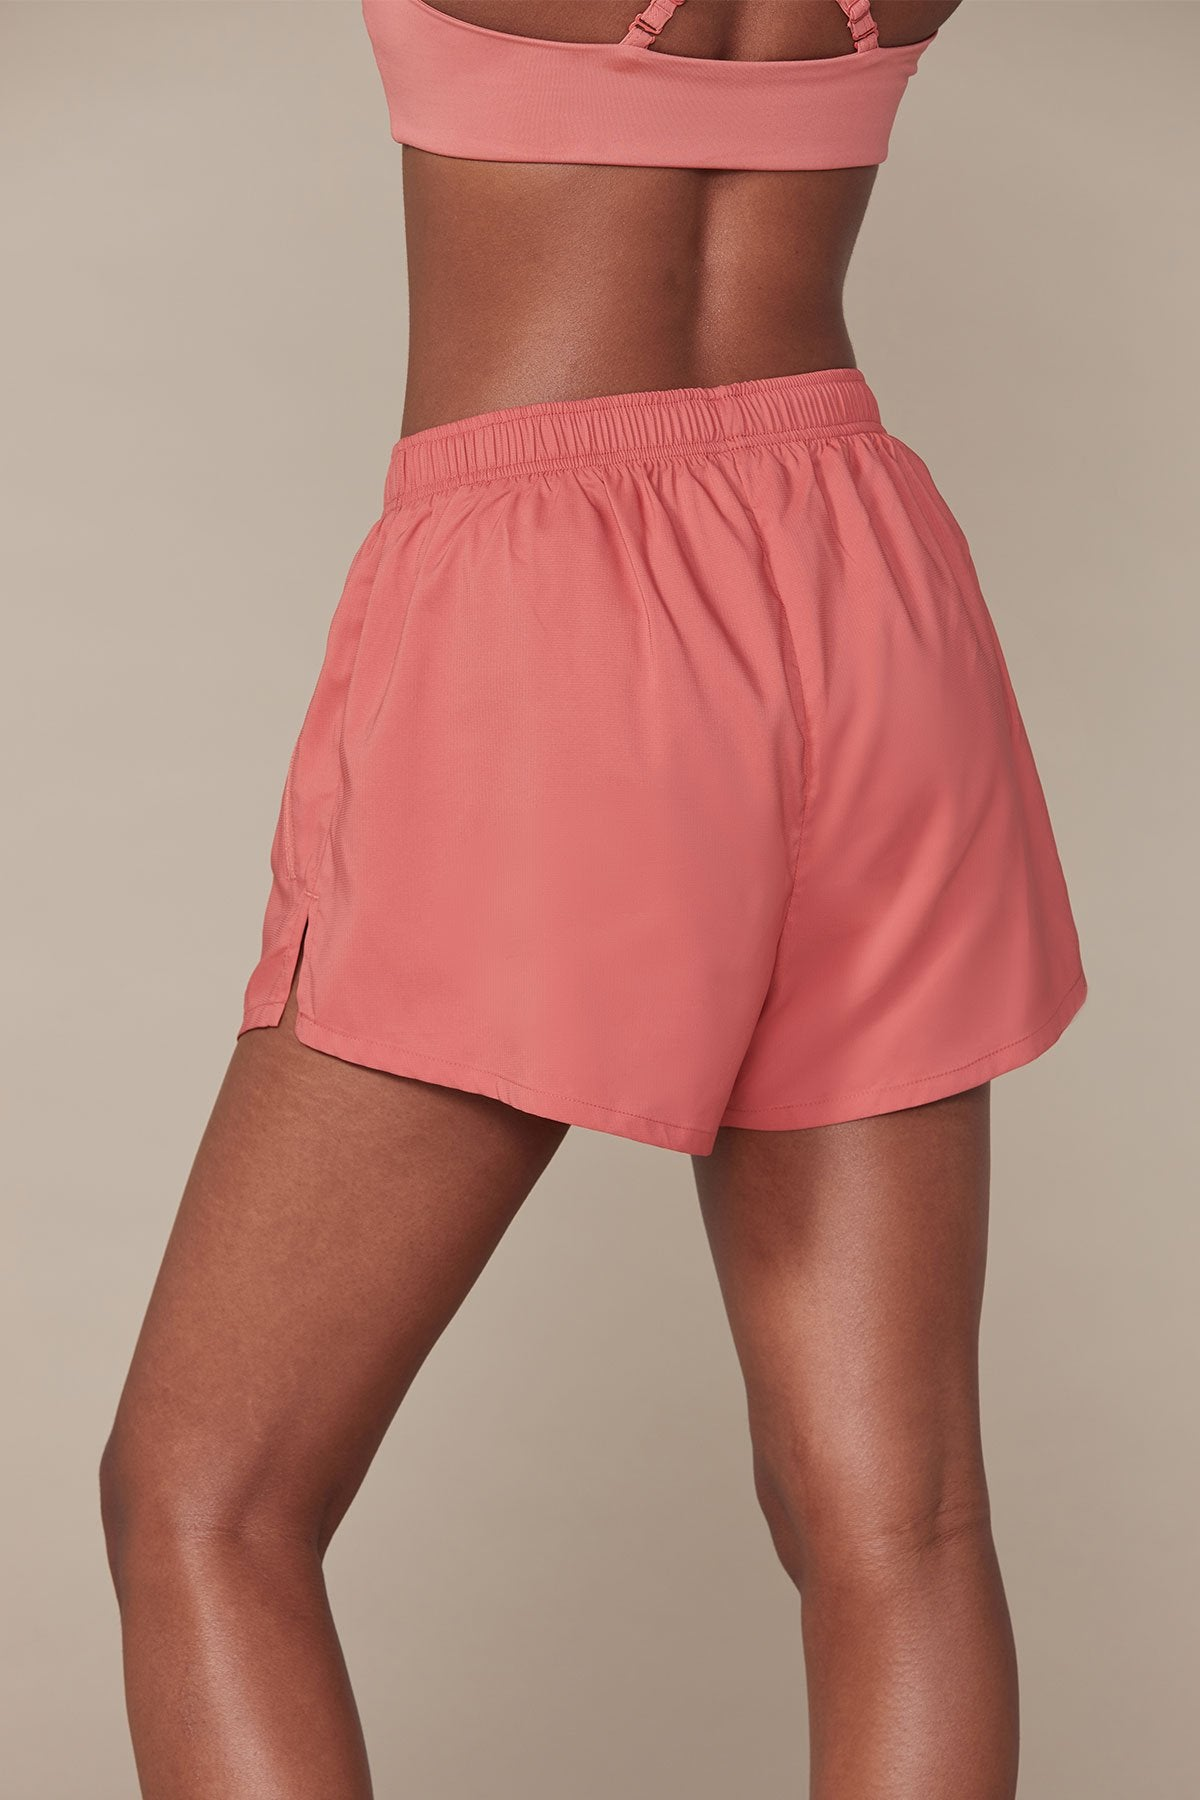 Clay Gazelle Short